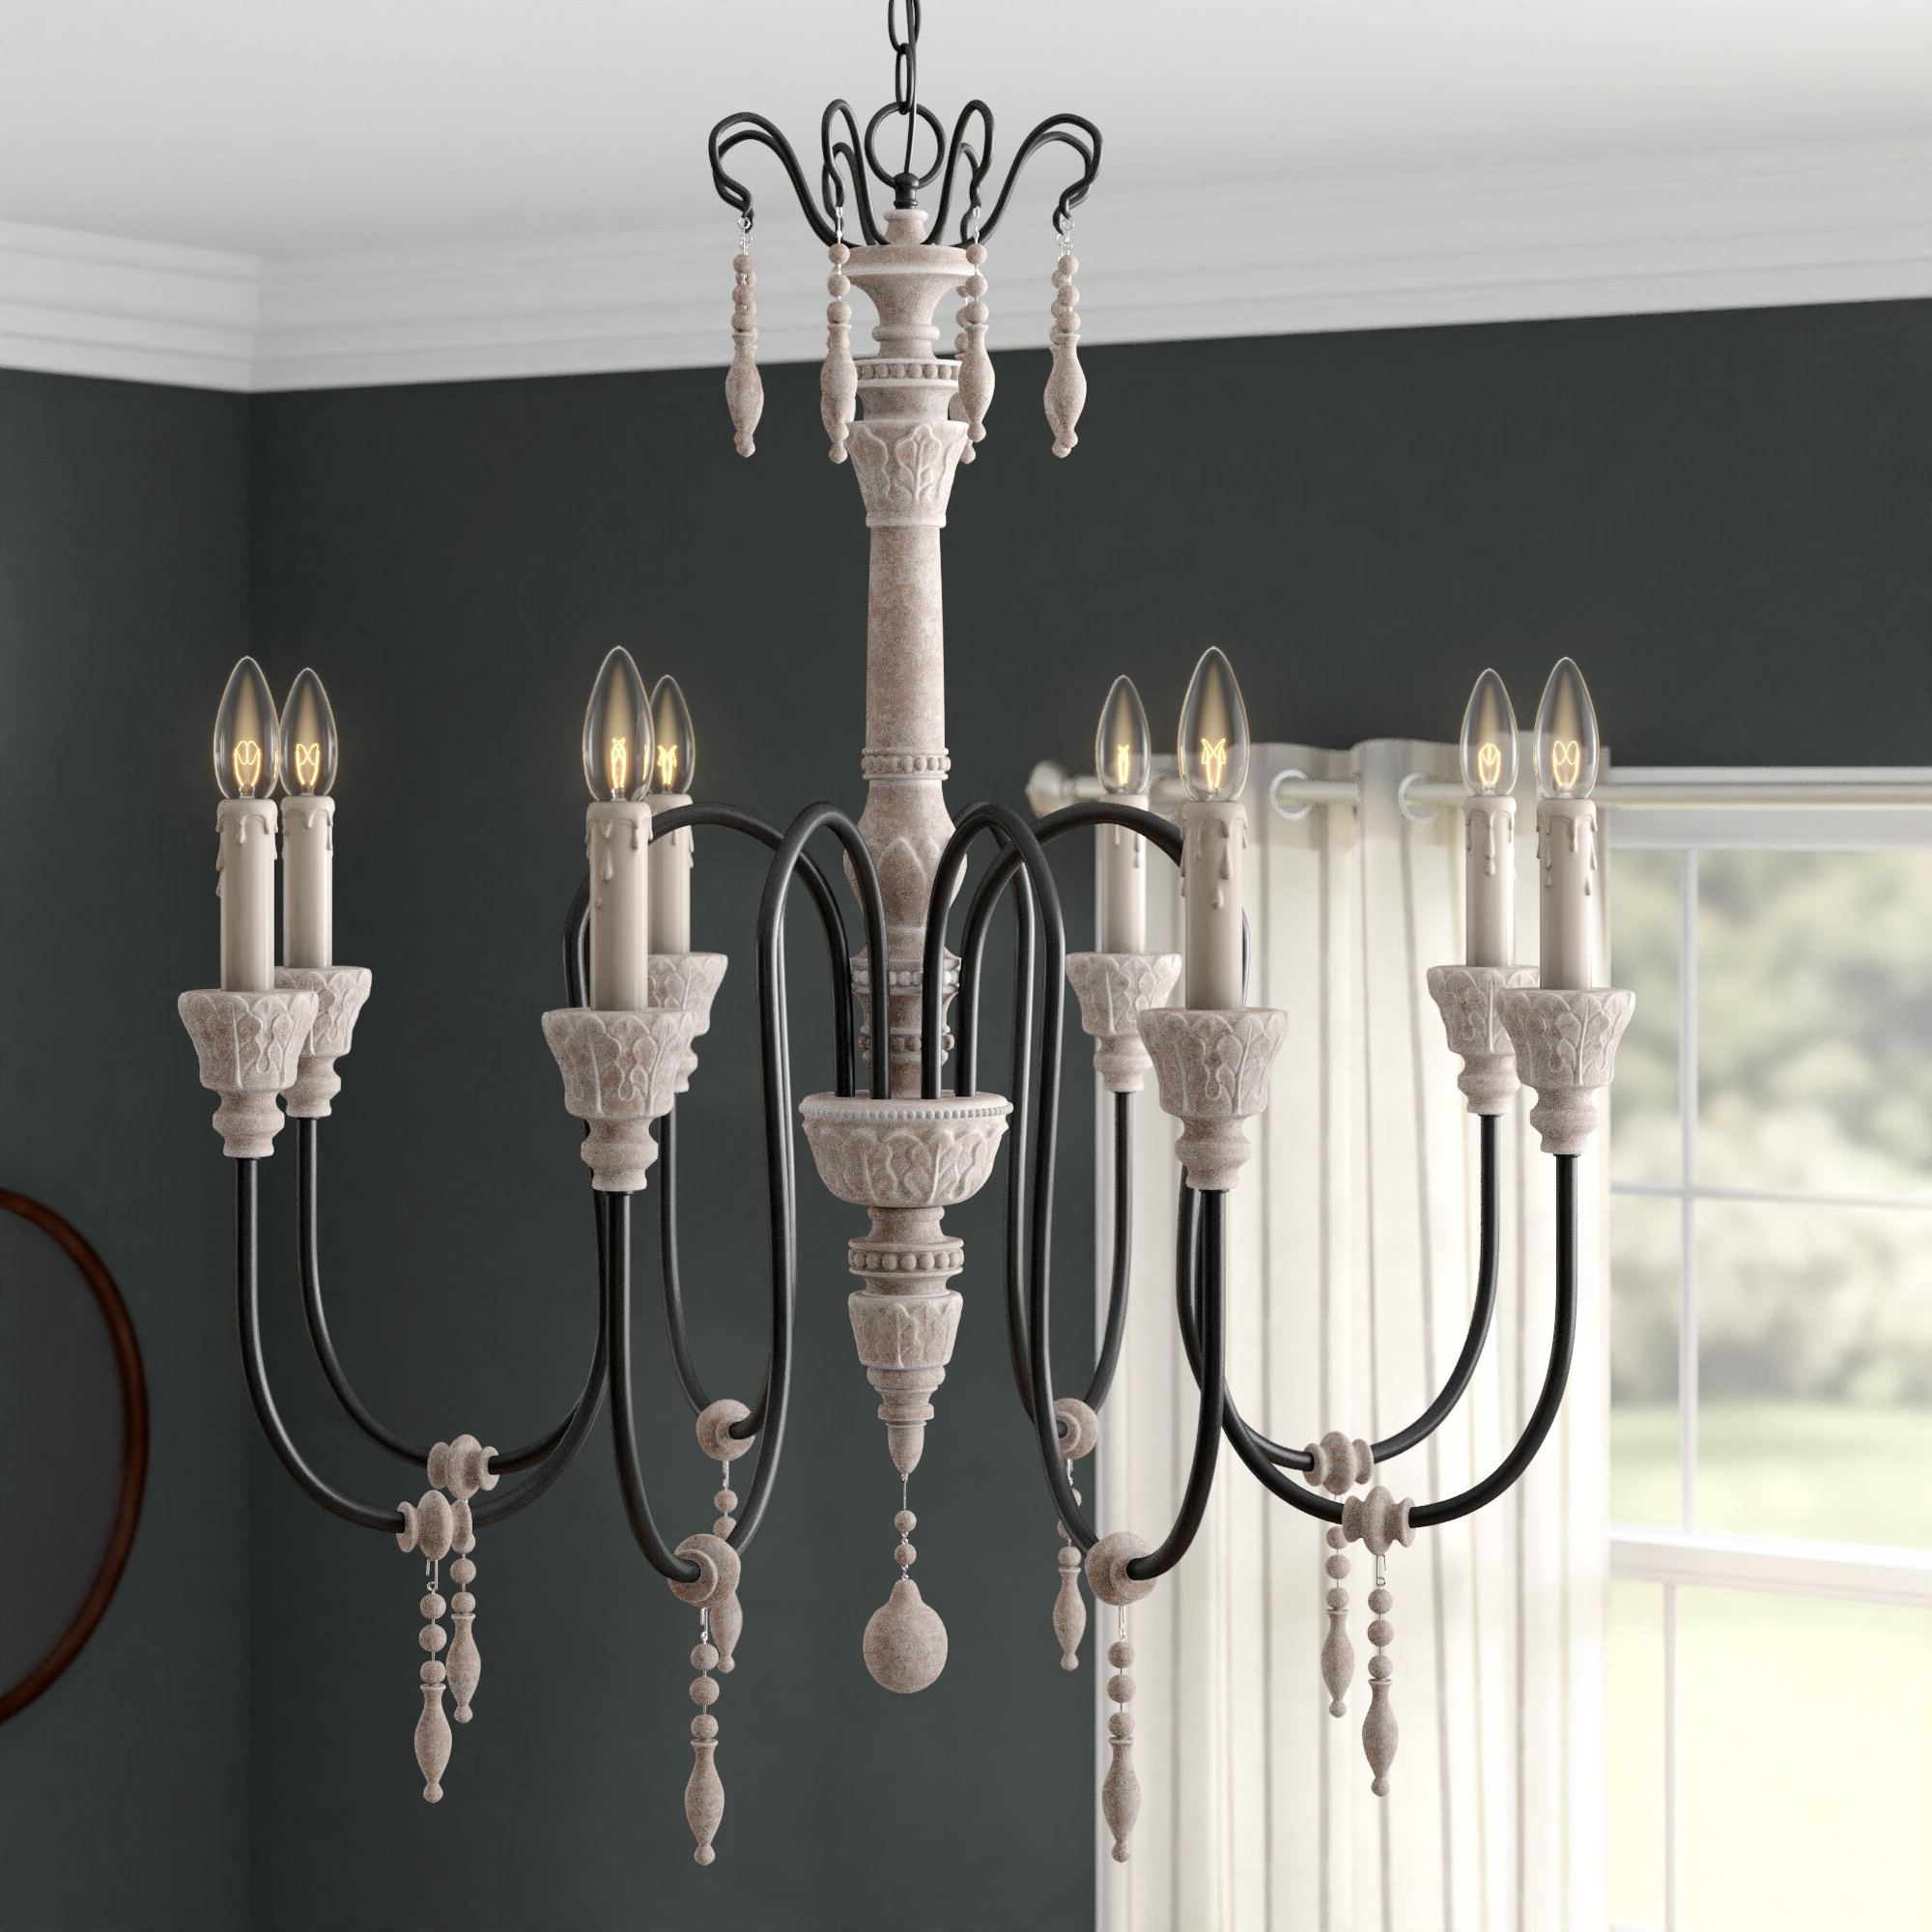 Ailsa 8 Light Candle Style Chandelier In Preferred Corneau 5 Light Chandeliers (View 1 of 25)